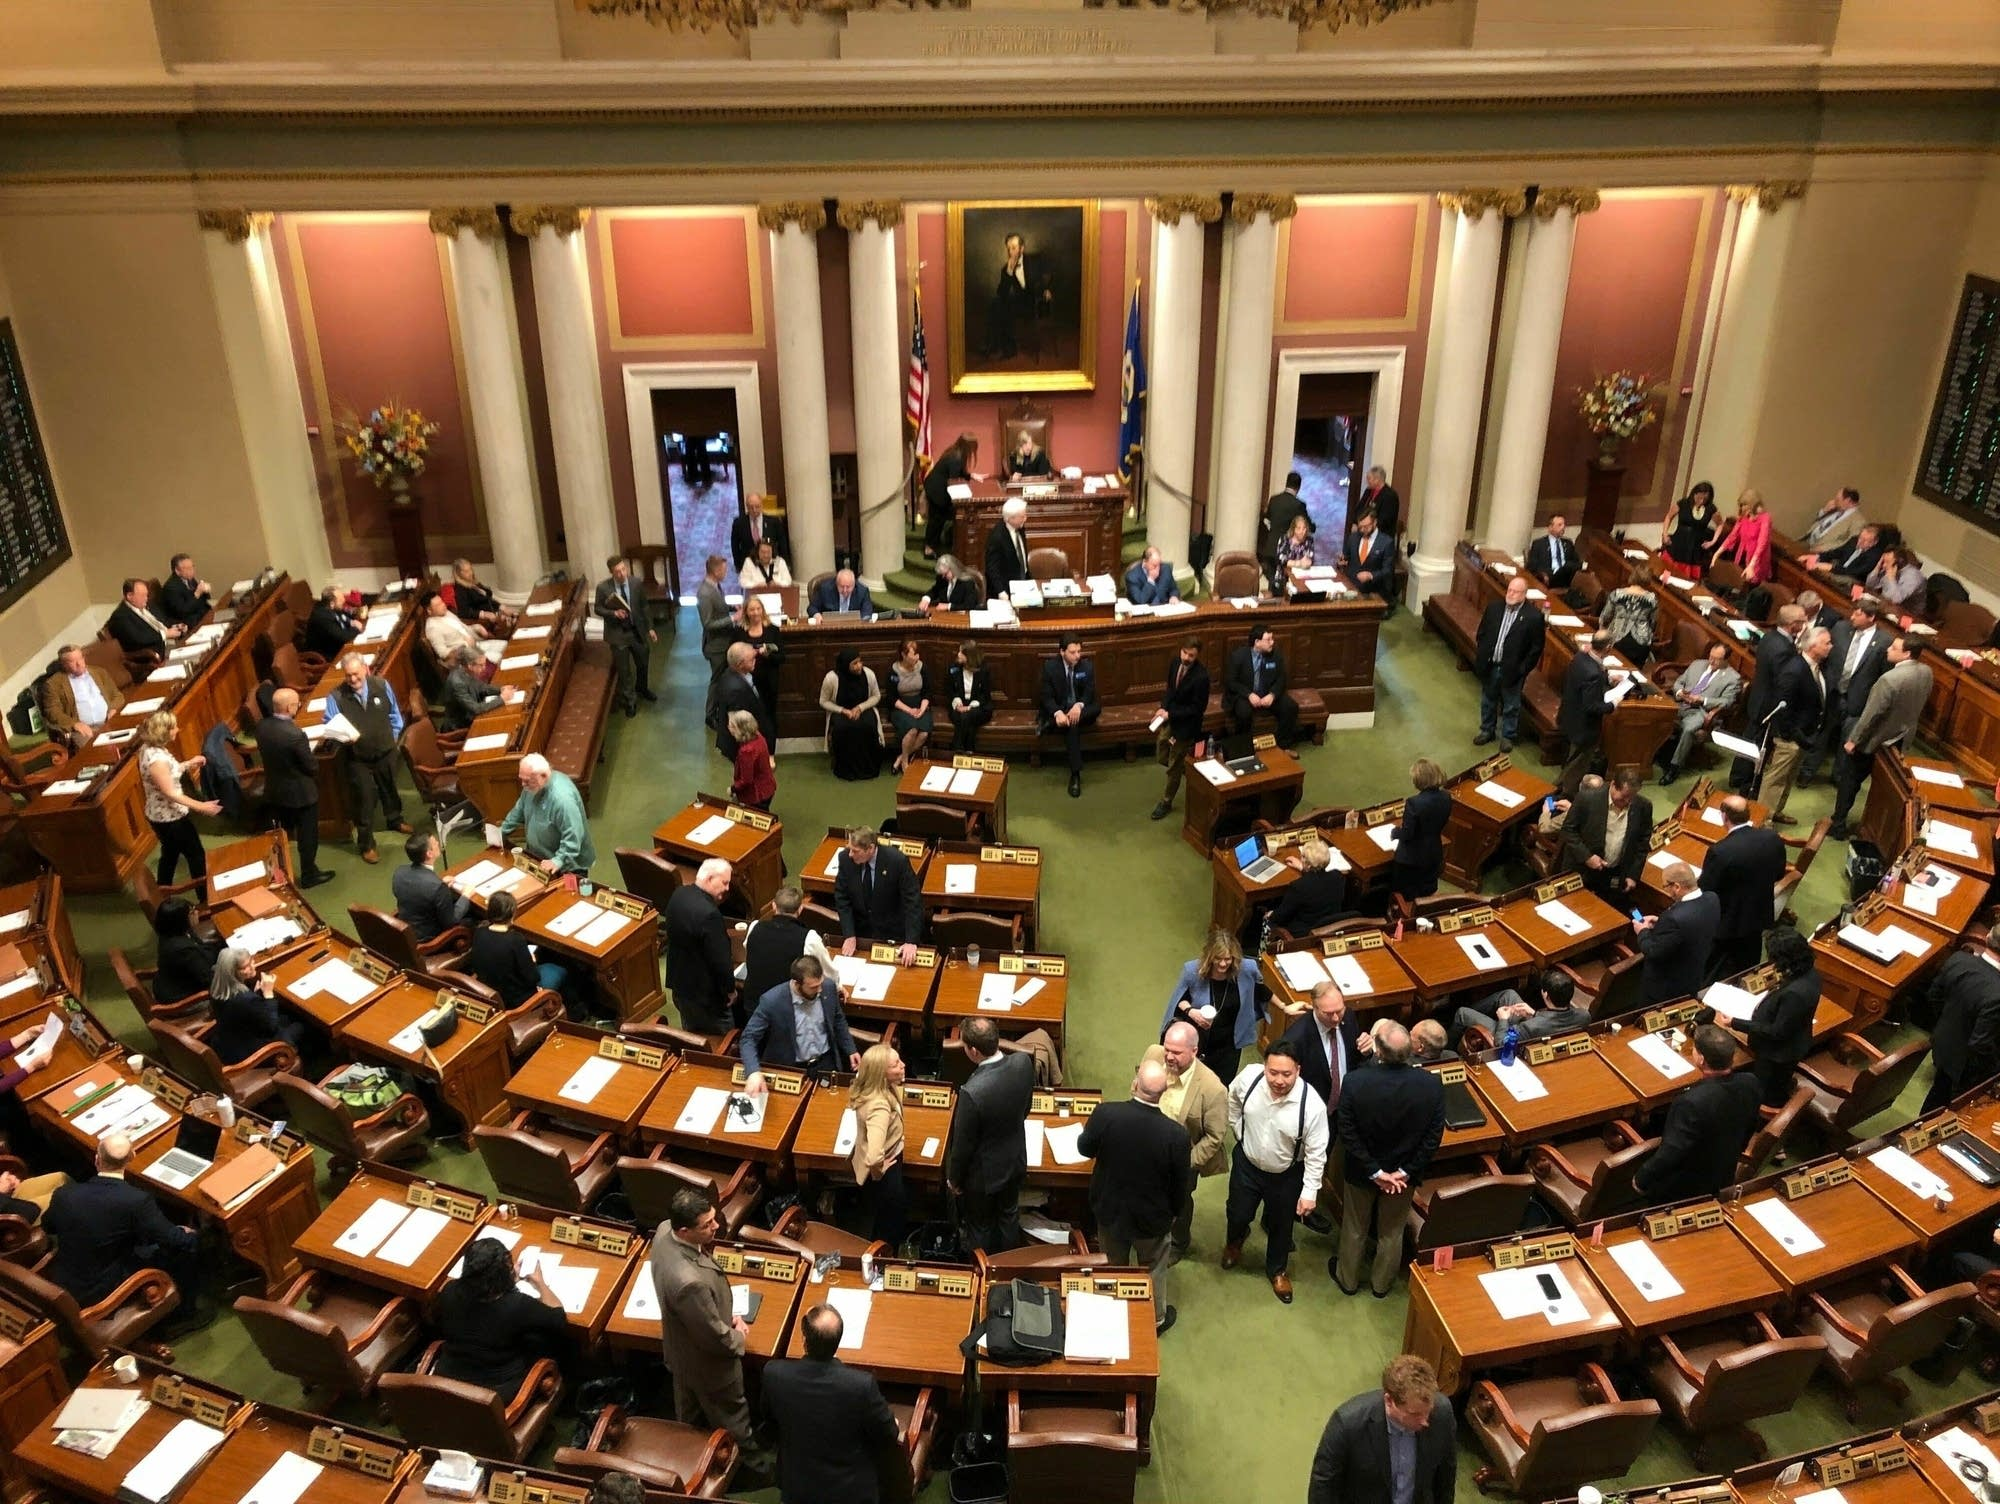 Representatives gather on the floor of the Minnesota House